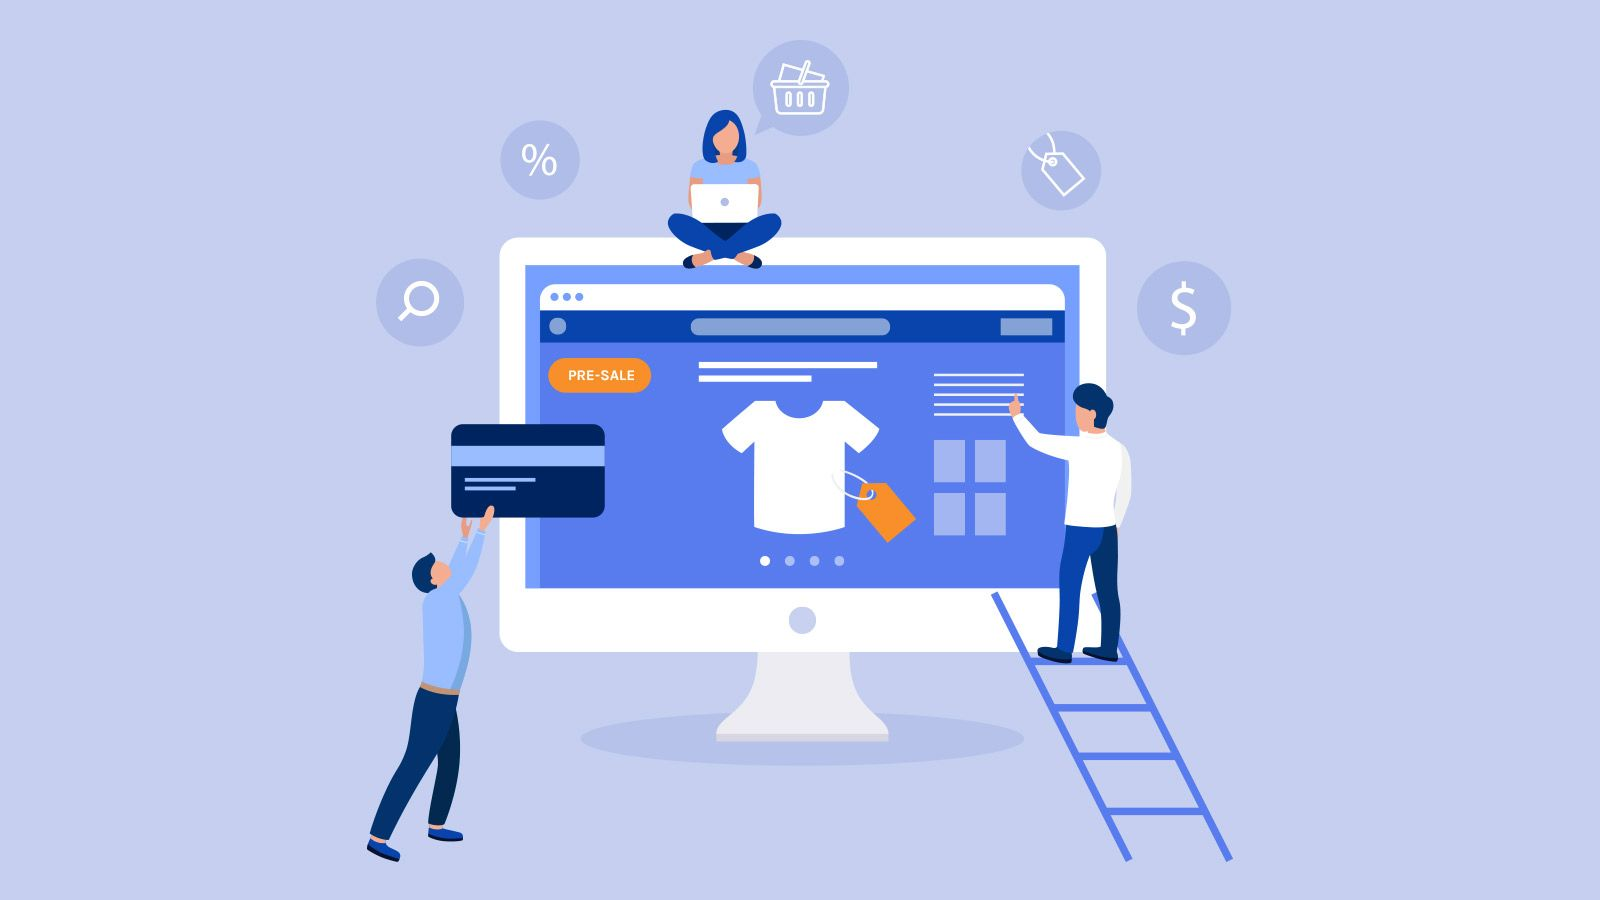 How to set pre-orders for your eCommerce store